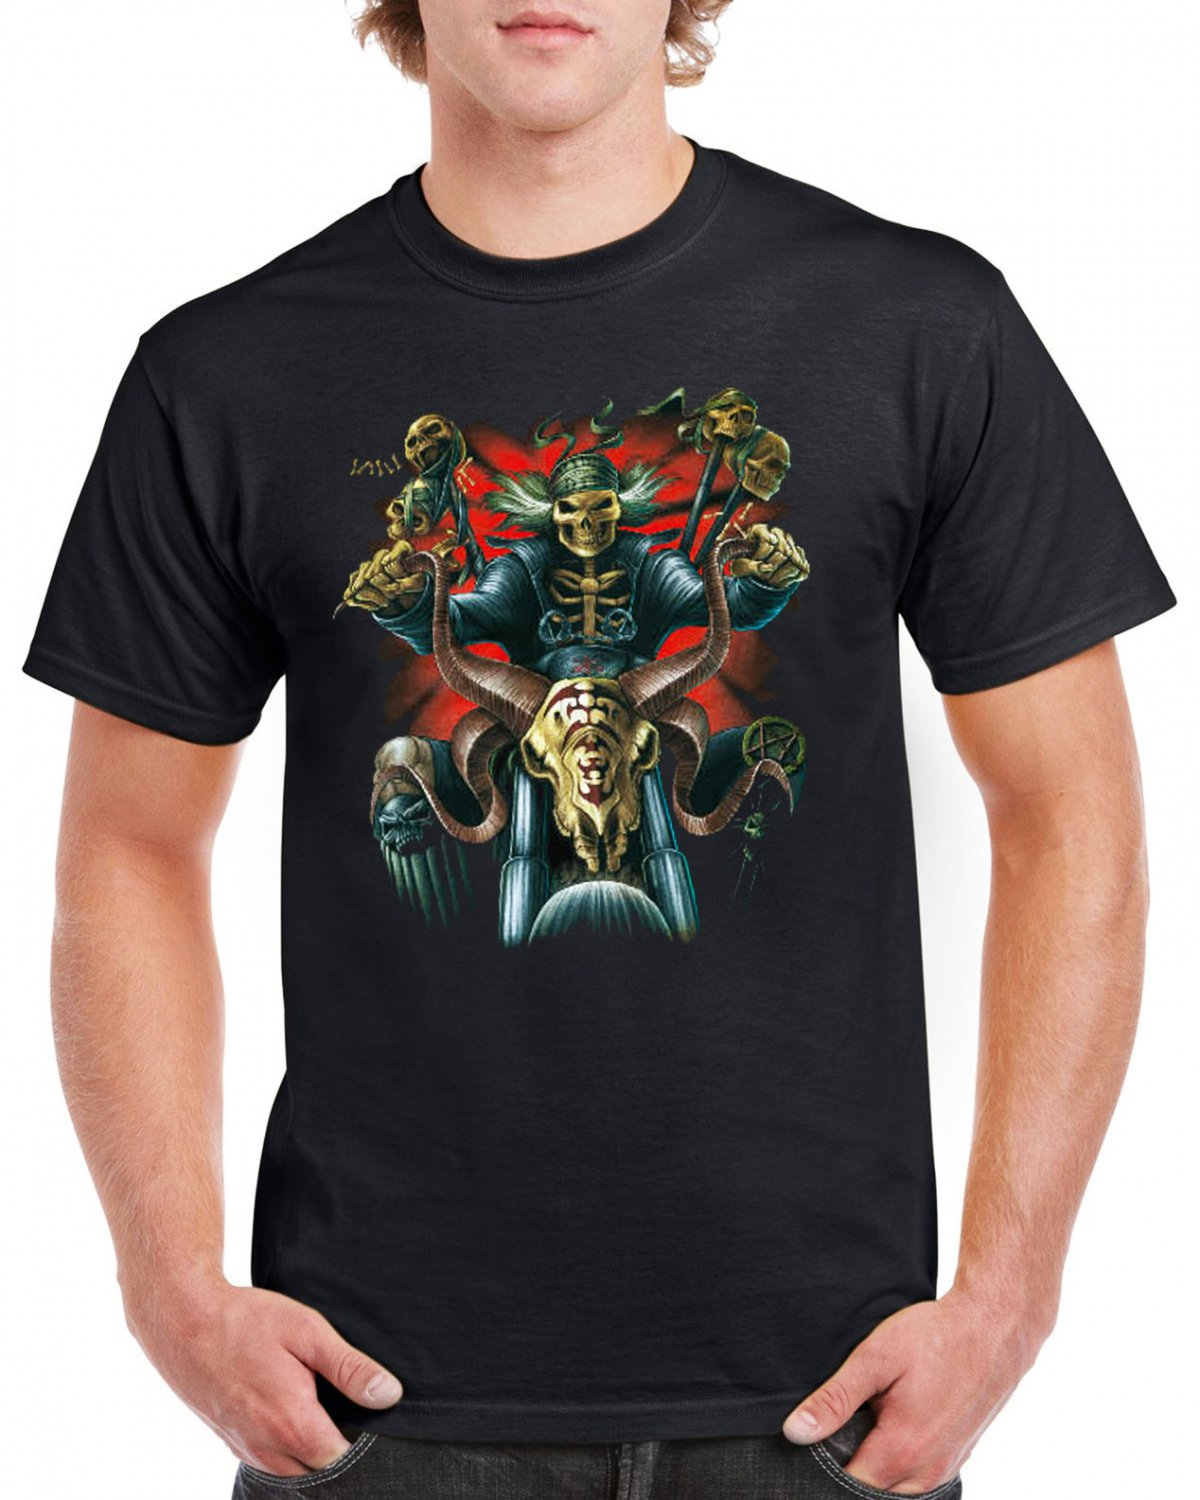 Heavy Metal Skull Skeleton T-shirt Motorcycle Rider Devil Cool Tshirt Music Festival Top Tee